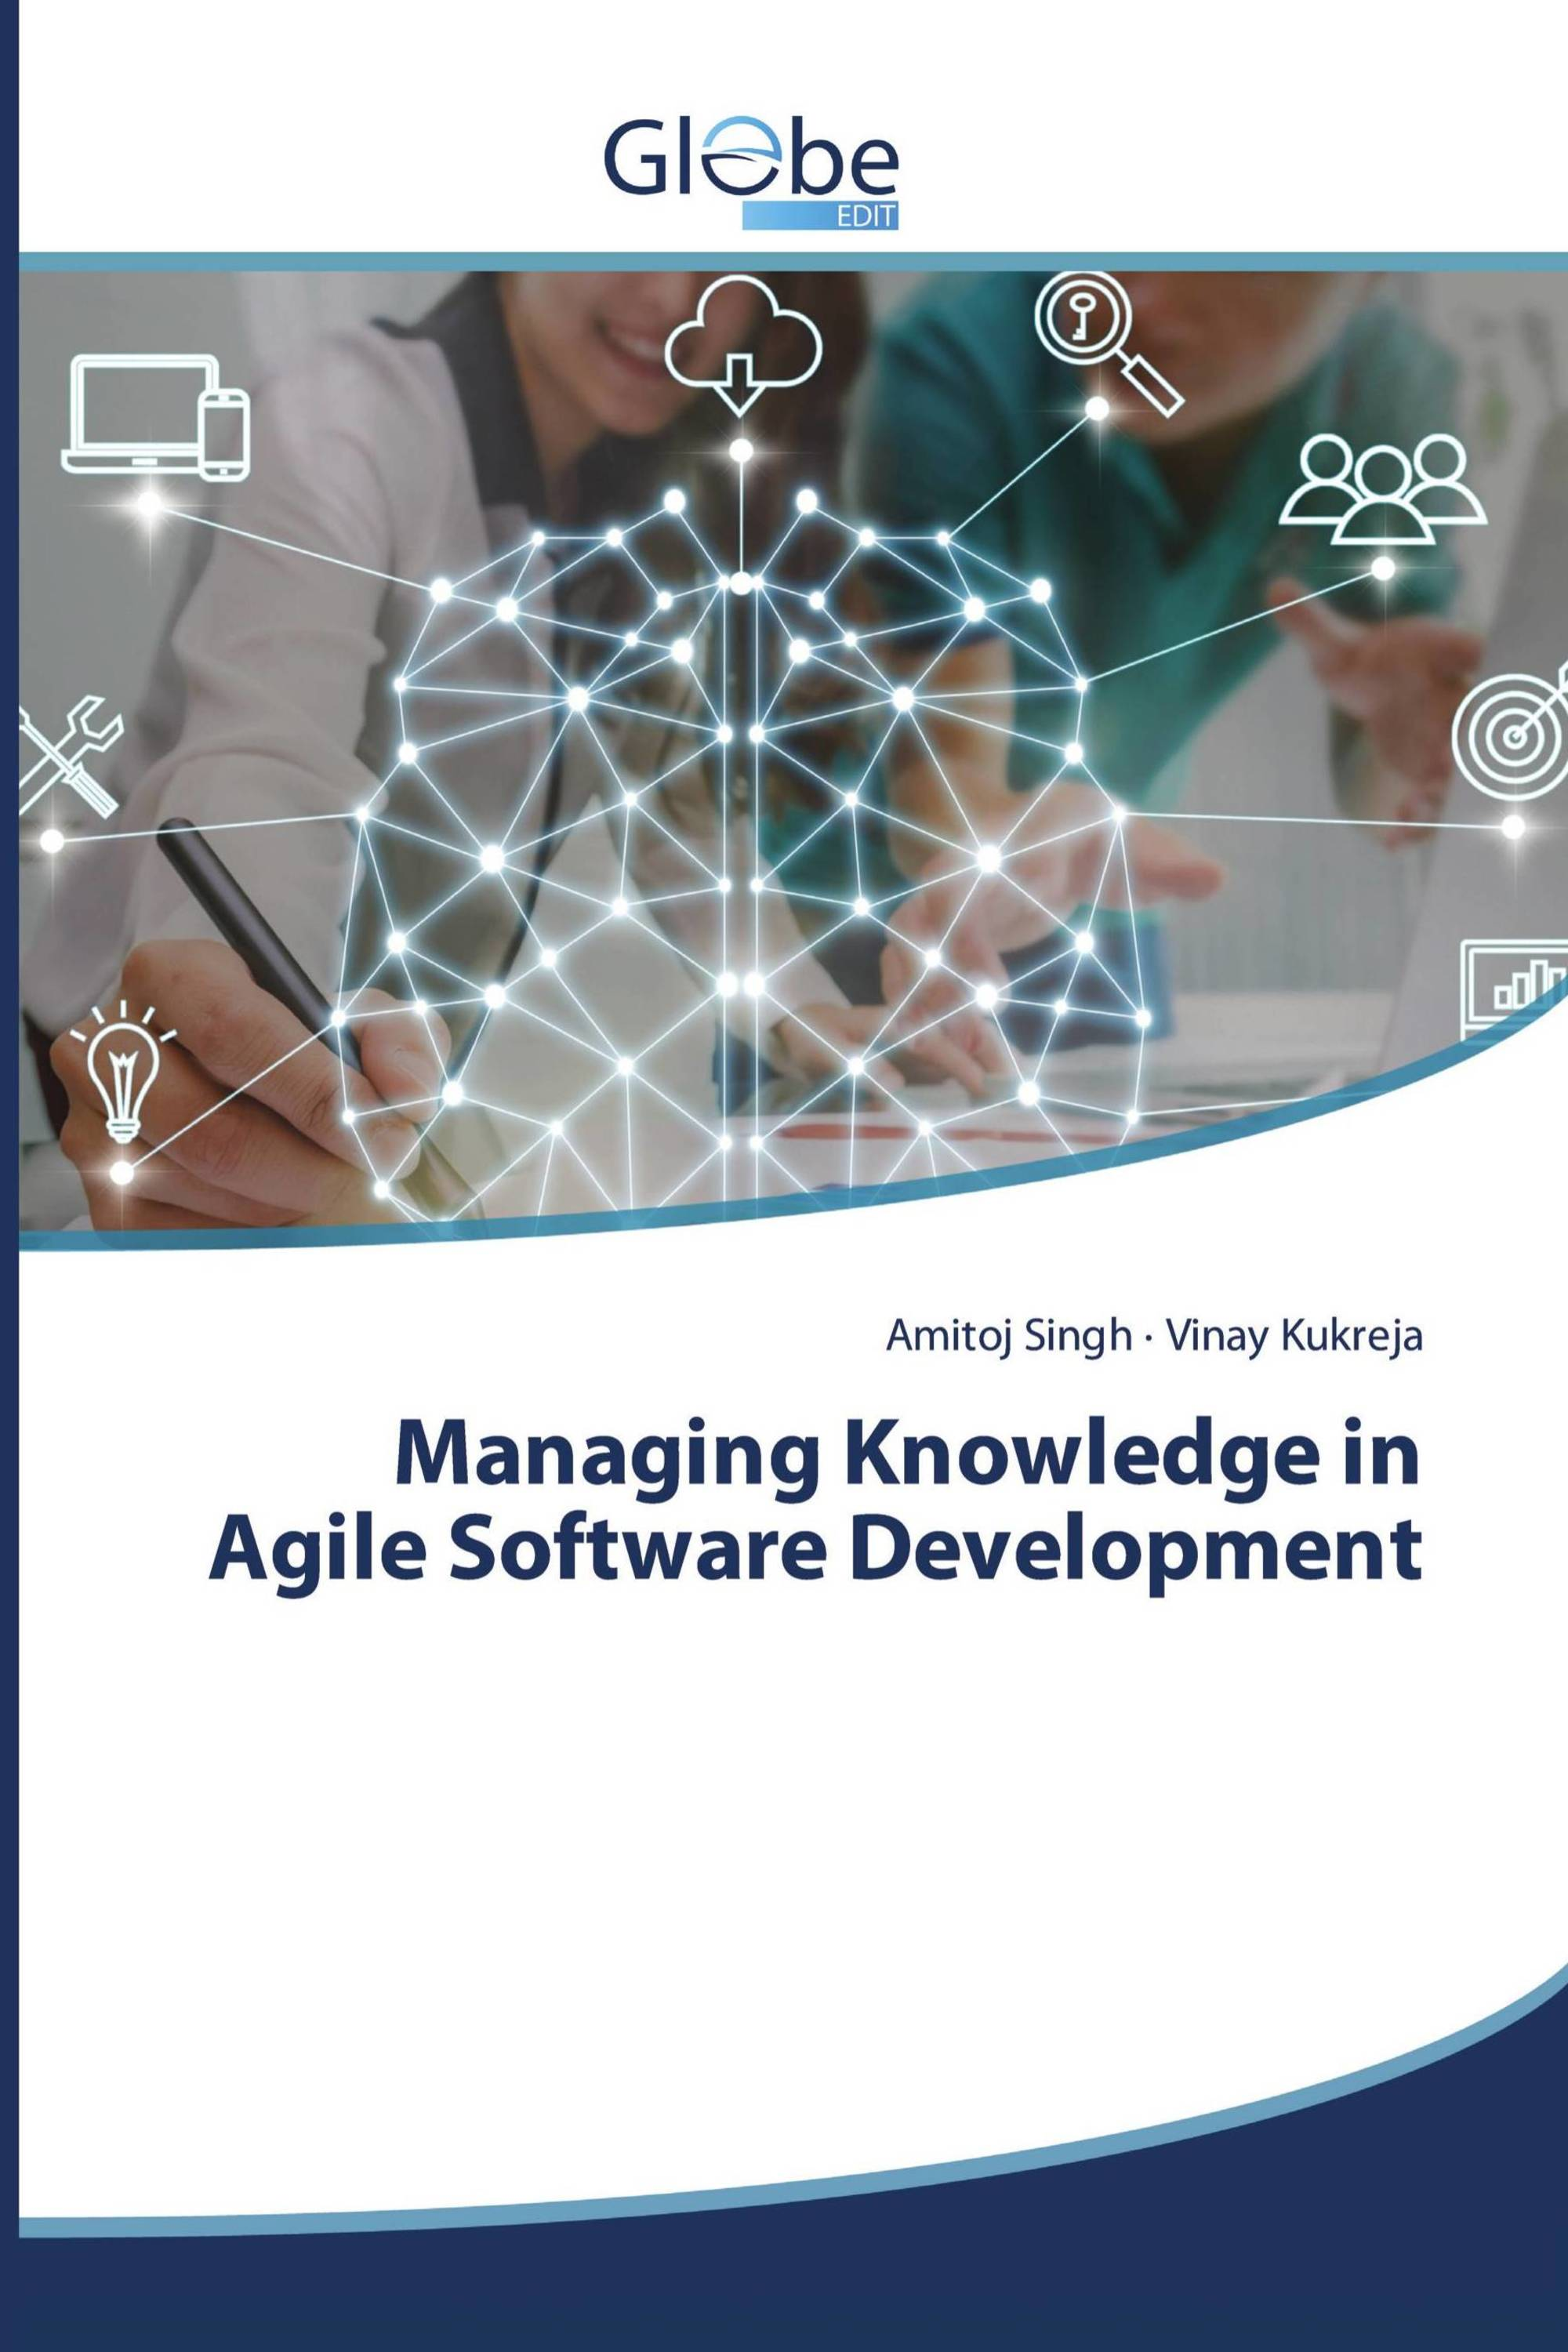 Managing Knowledge in Agile Software Development